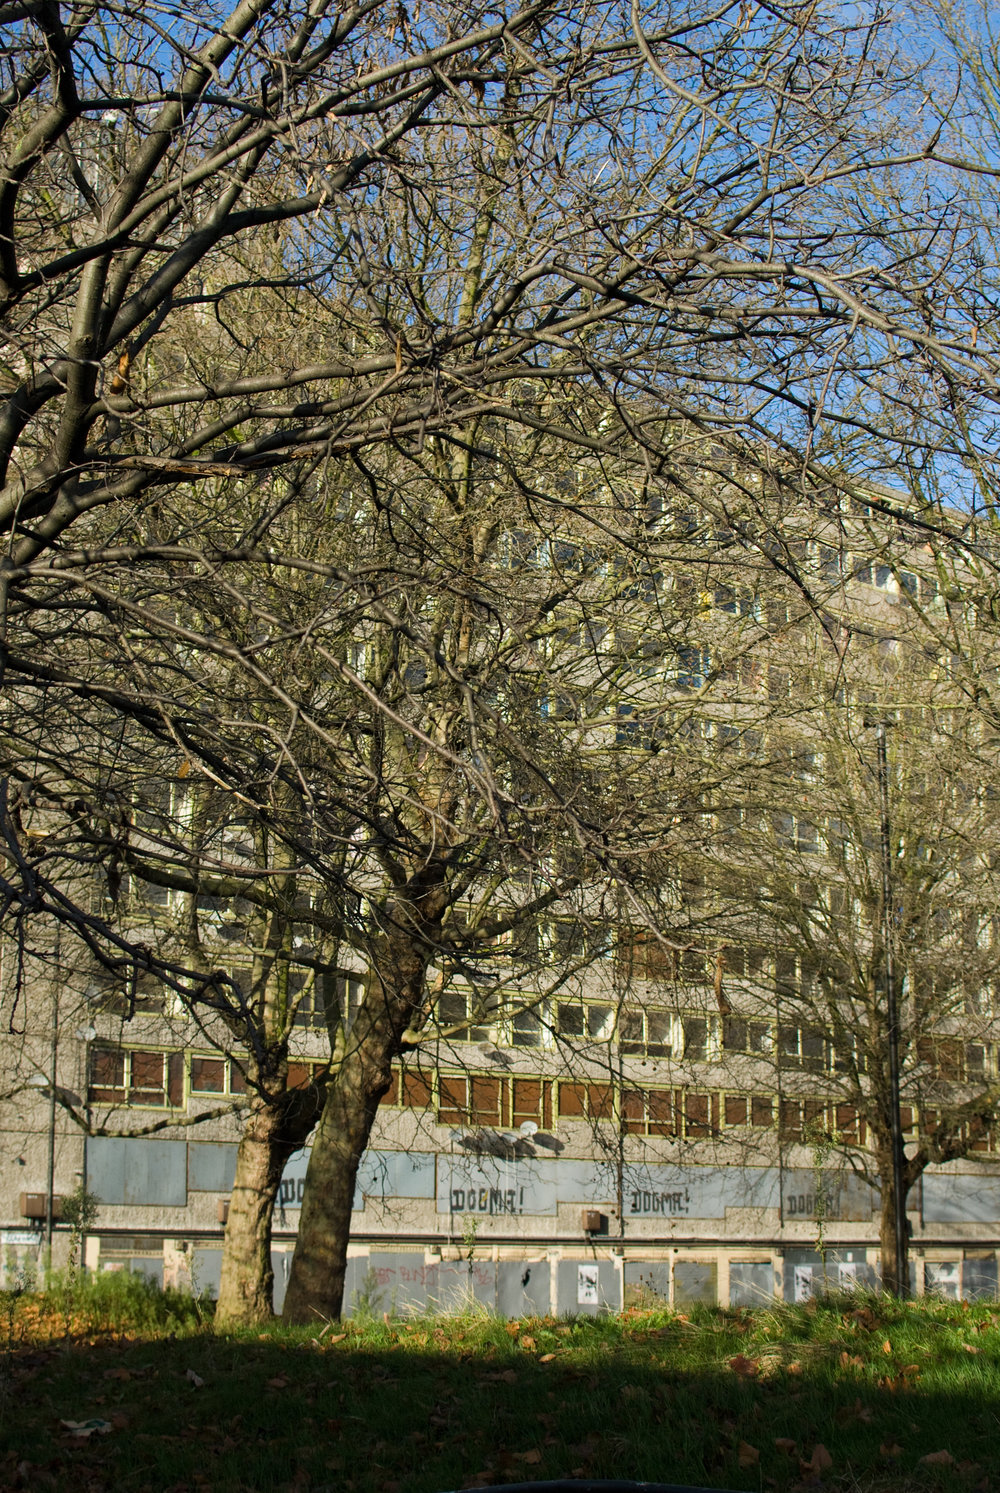 Georgina_cook_Heygate_estate_building.jpg